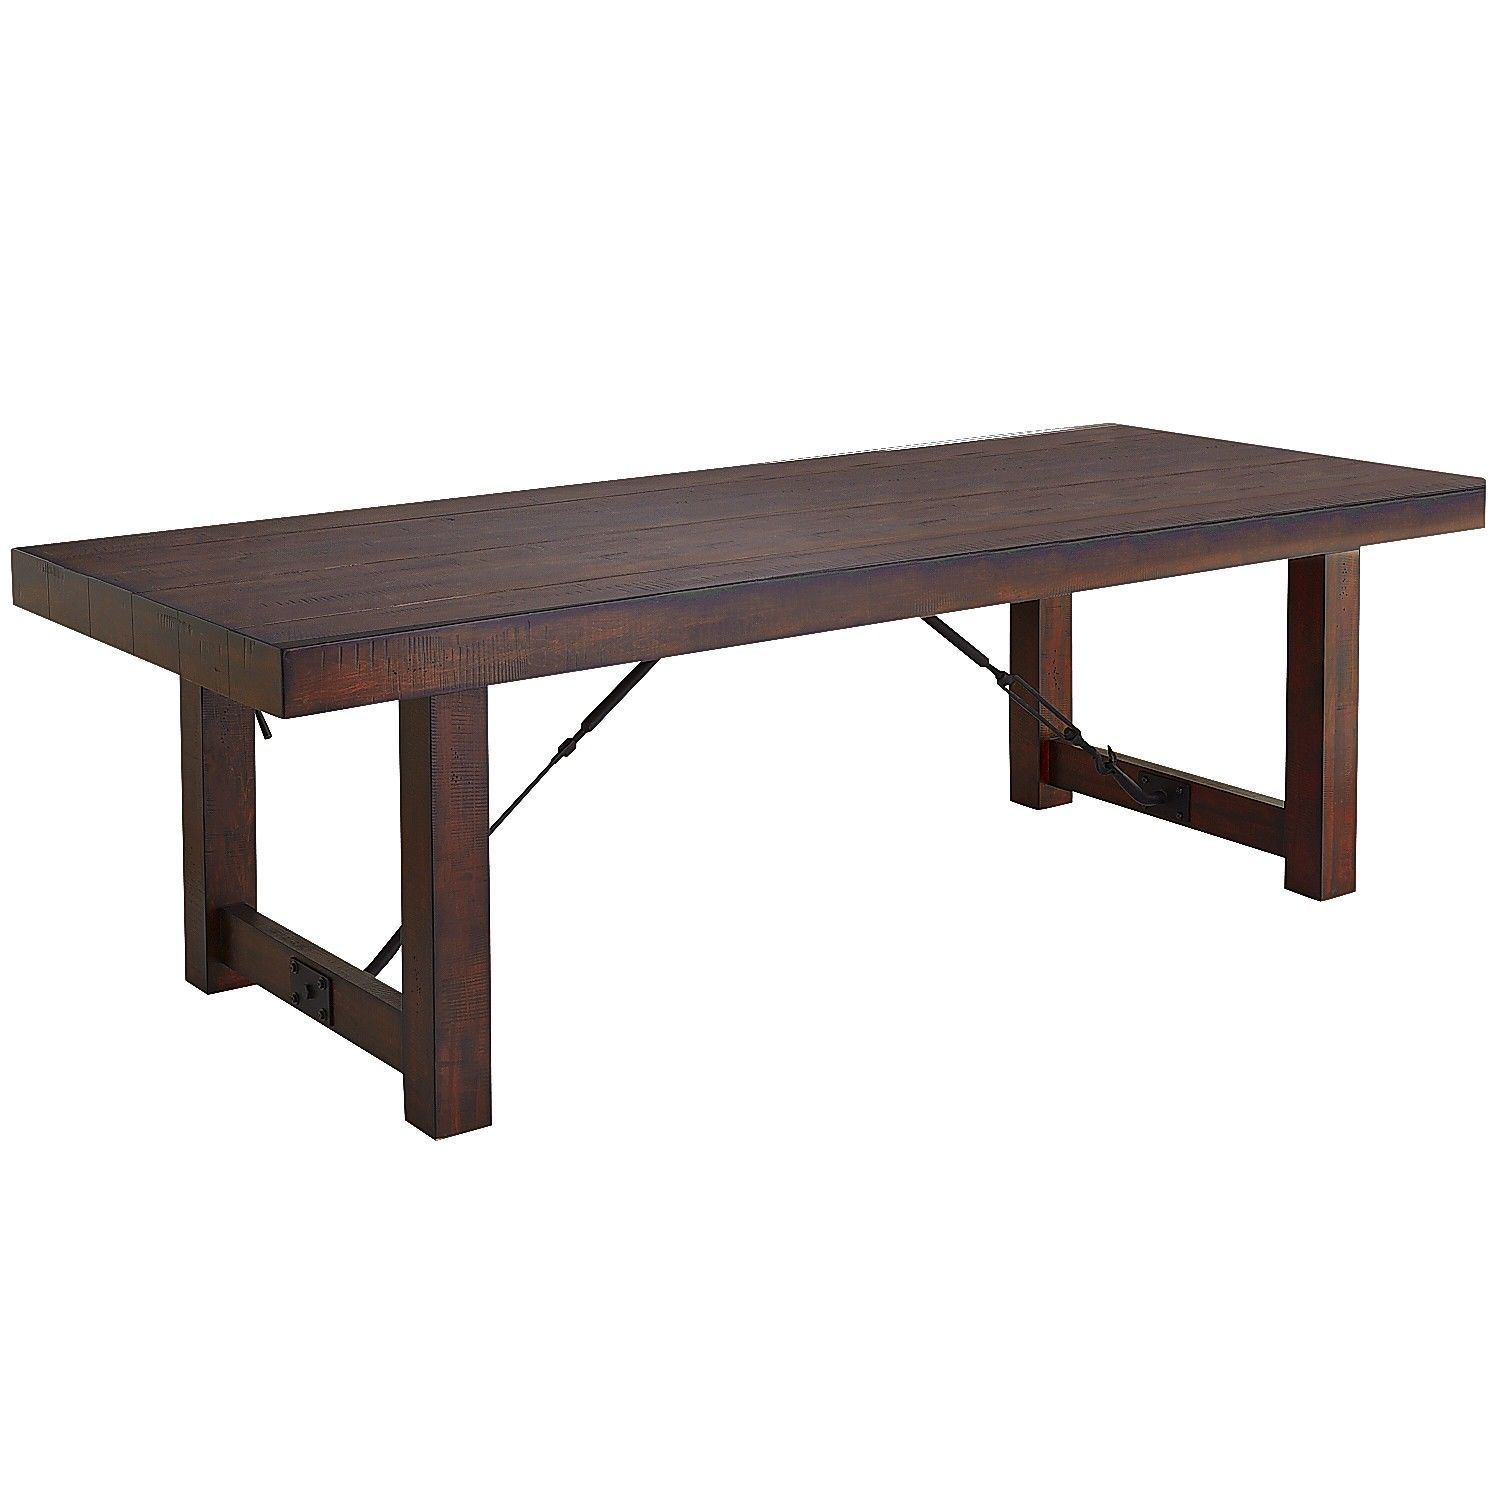 "Eastwood Tobacco Brown 94 25"" Dining Table"